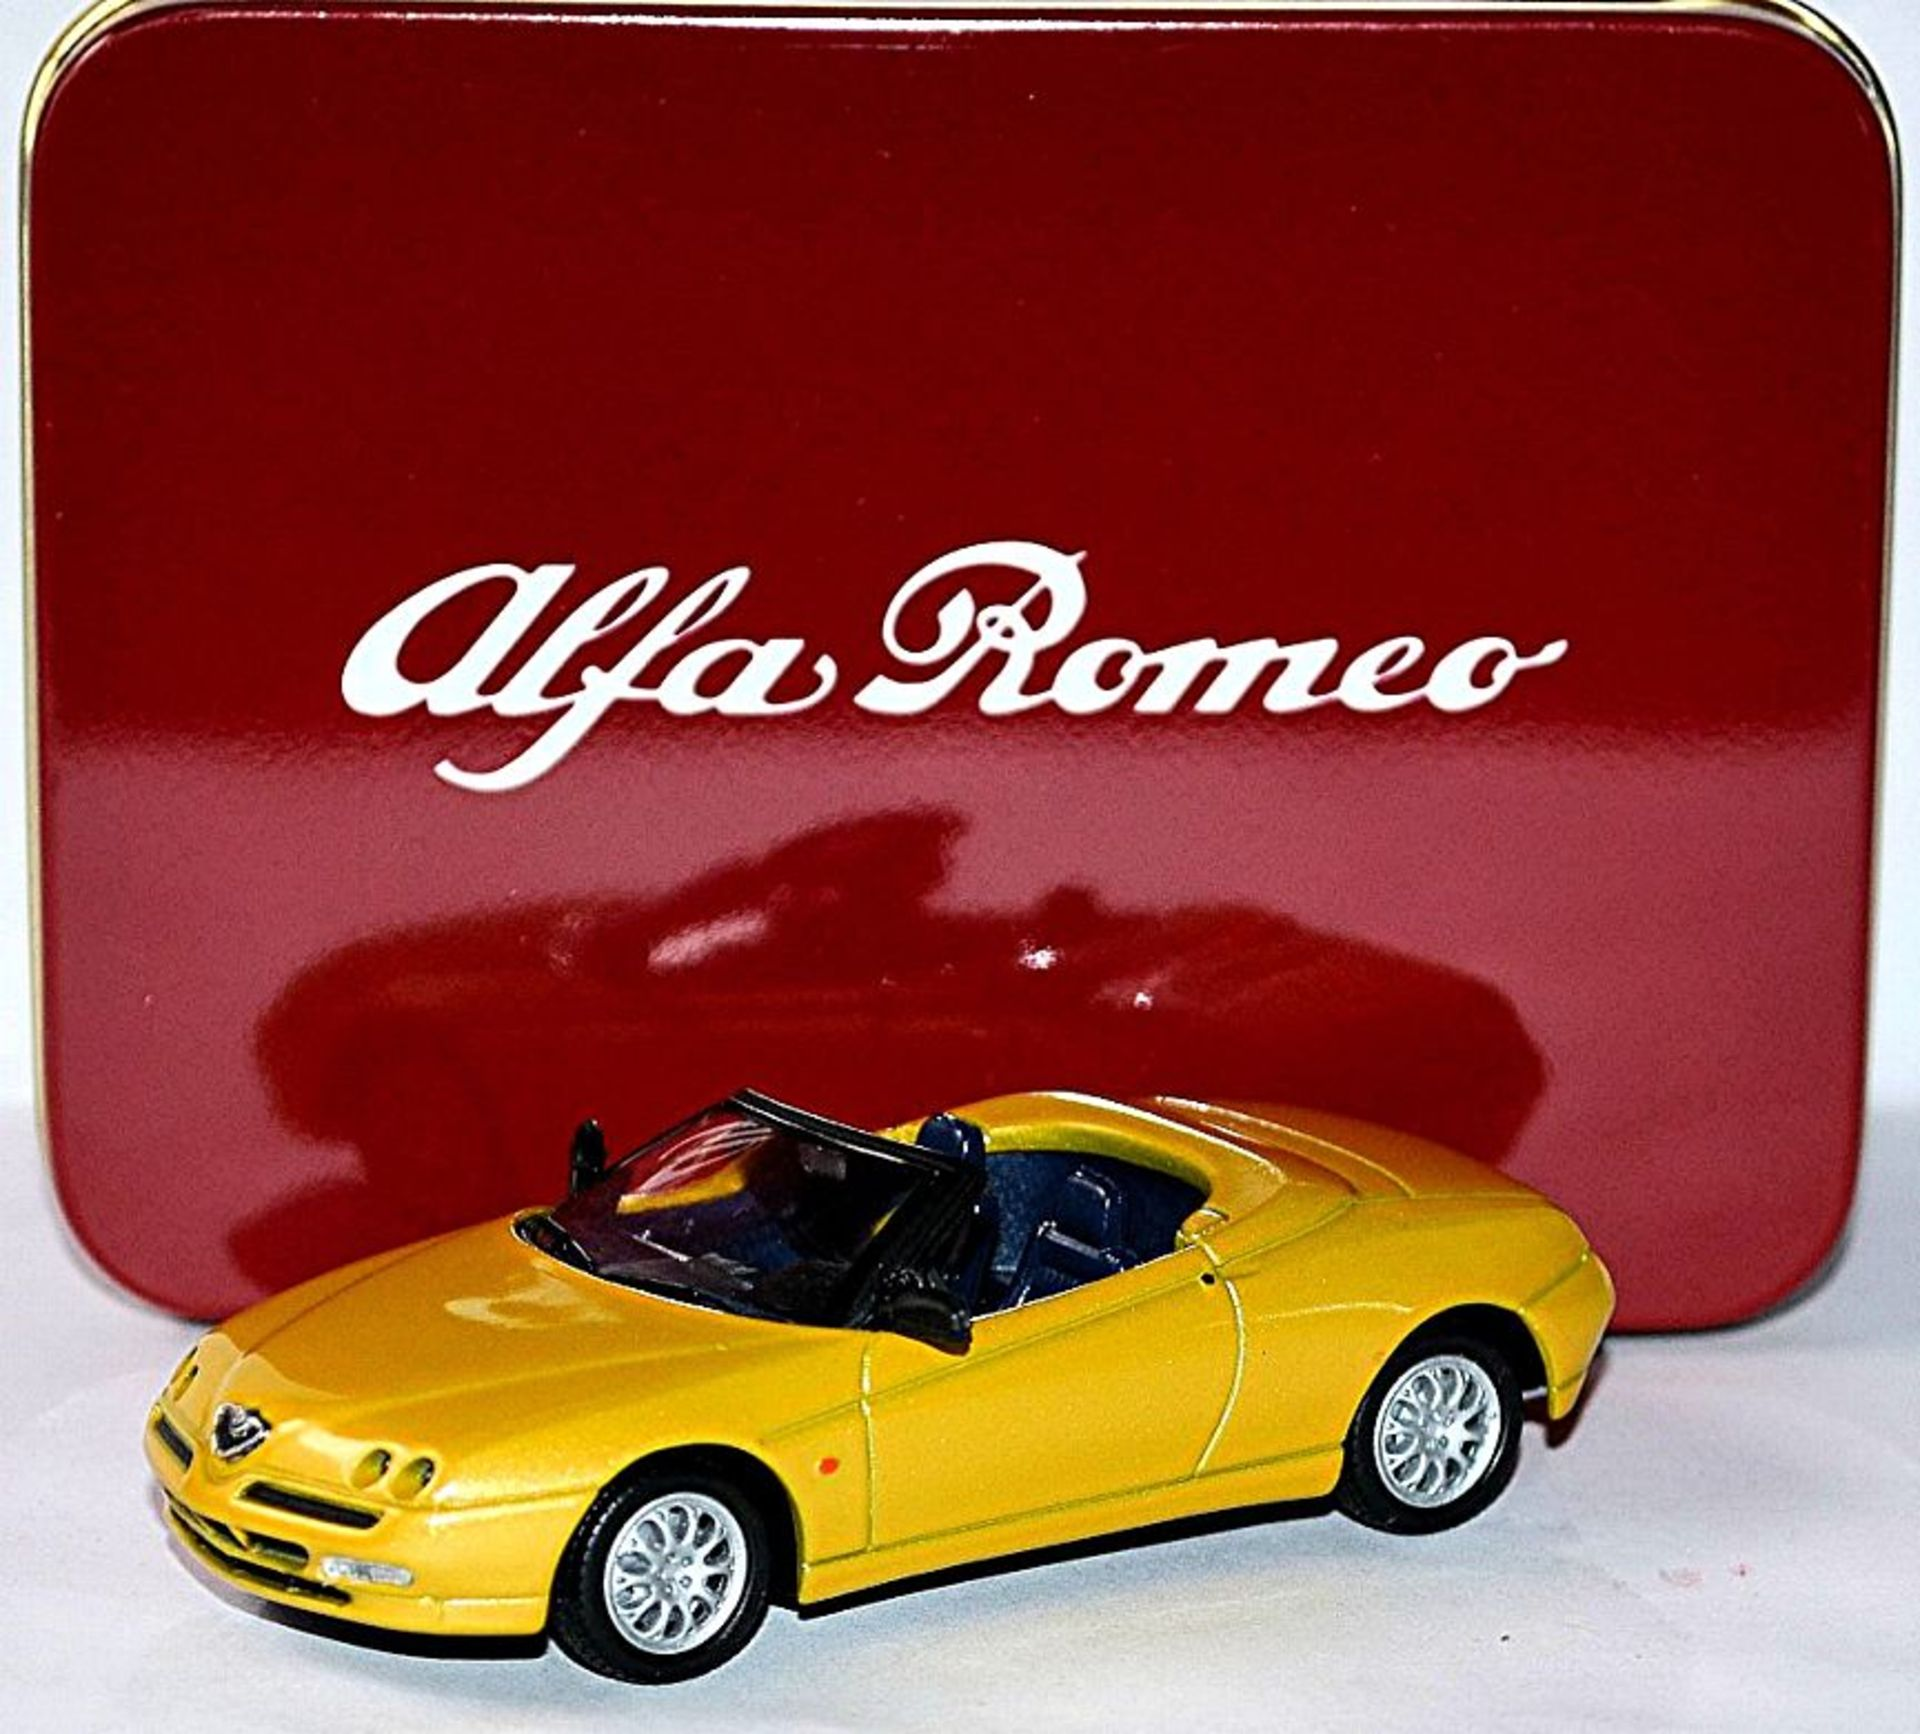 Lot 10376 - V Brand New 1/43 Diecast Model 4655 - 1995 Alfa Romeo Spider - eBay Price £15.99